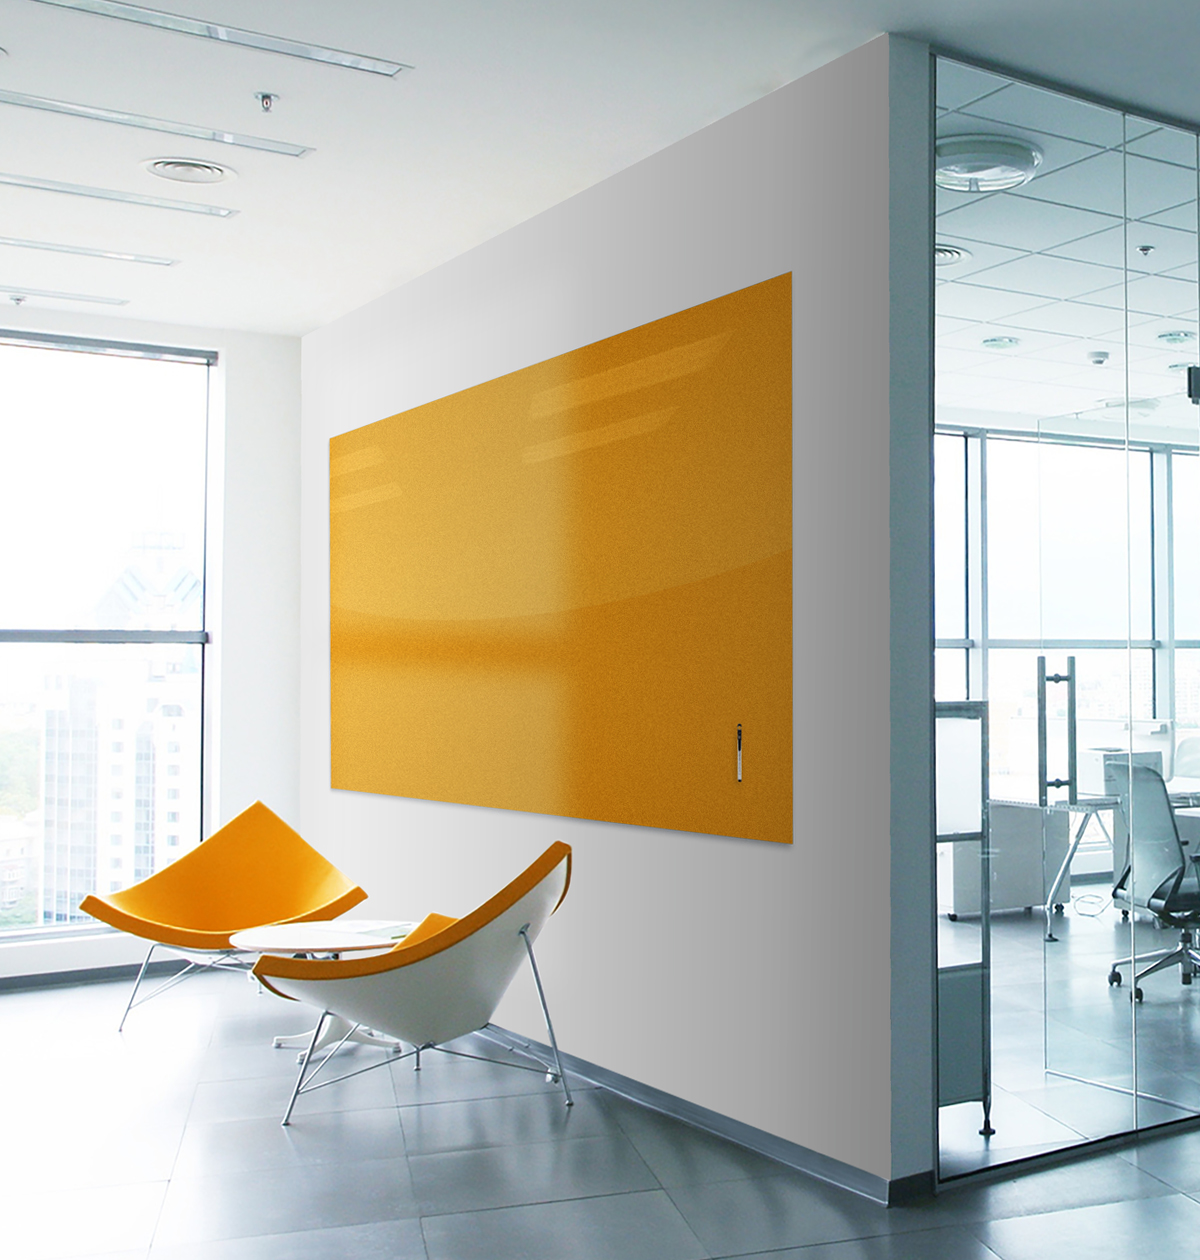 room with yellow markerboard and yellow chair